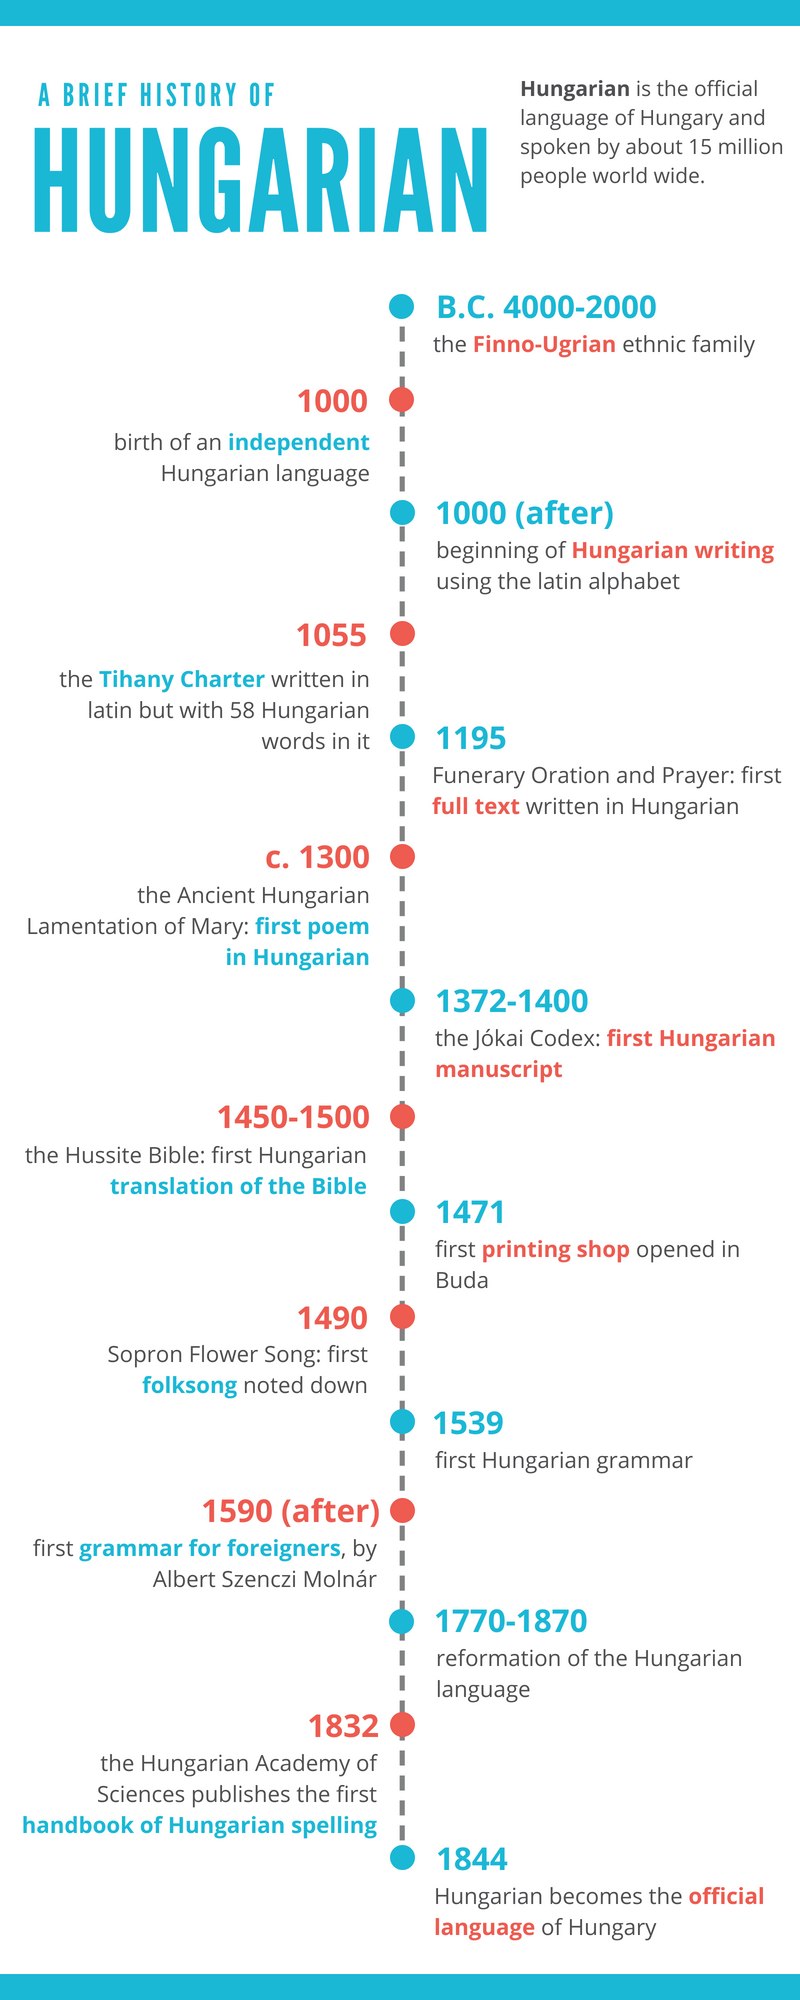 A brief history of Hungarian